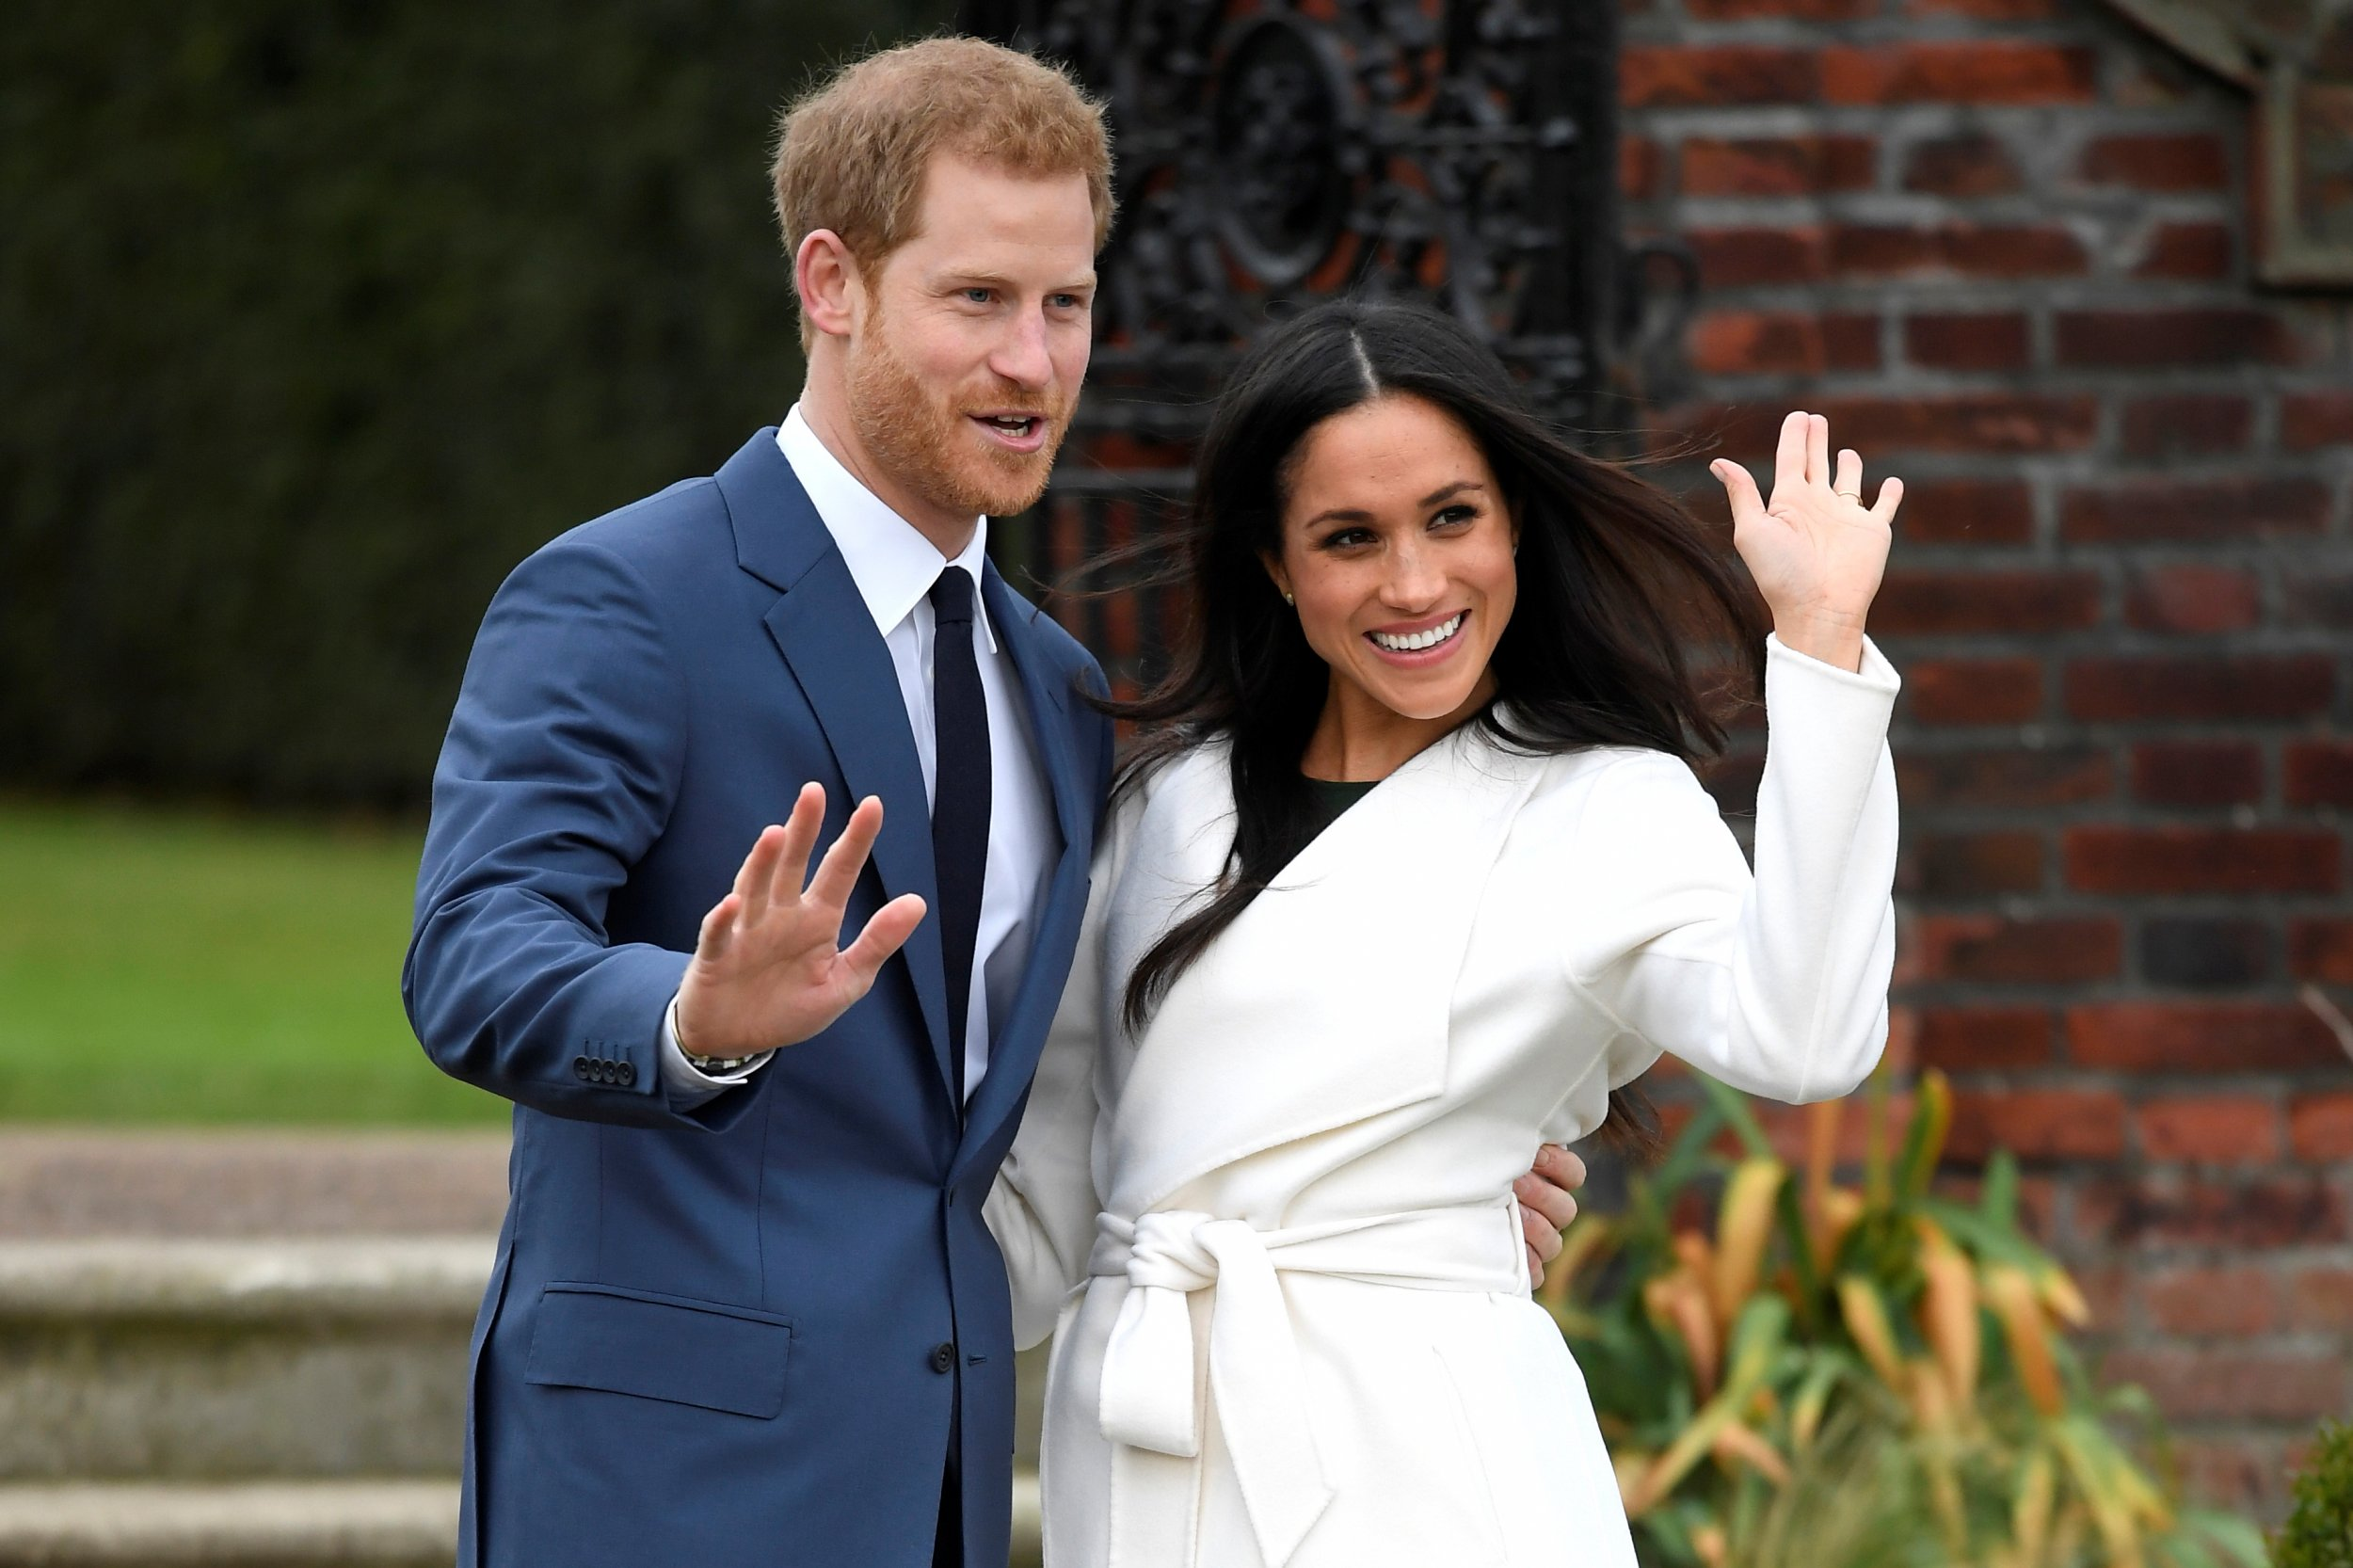 Cbs Royal Wedding Coverage.What Time Is The Royal Wedding In The U S And How To Watch It